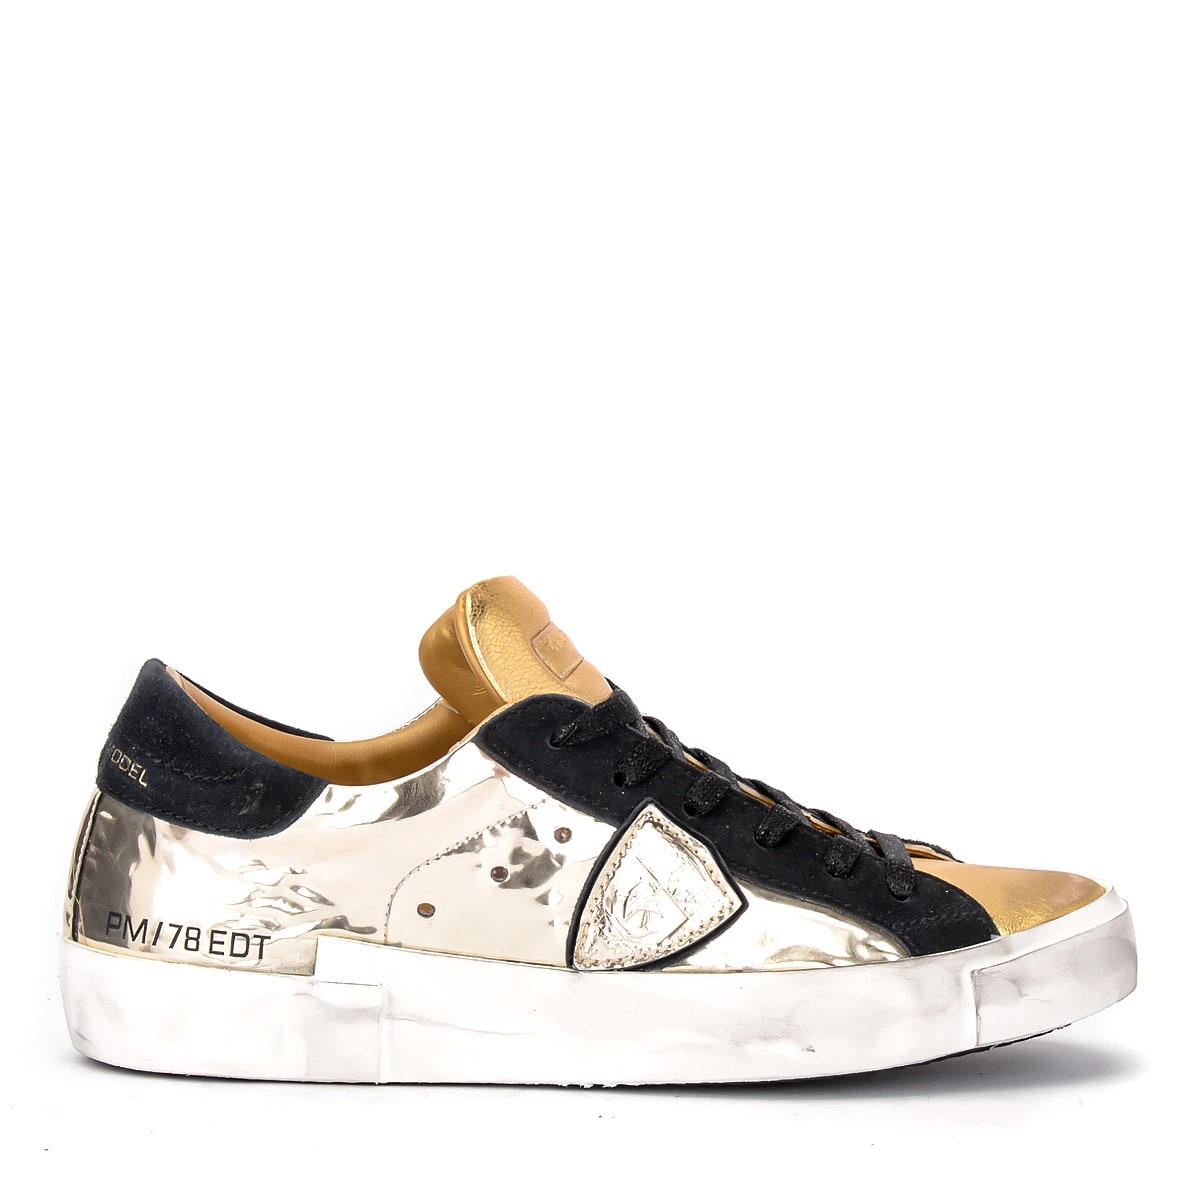 Philippe Model Sneaker Paris X Model In Gold Leather And Black Suede. Mirrored Details.